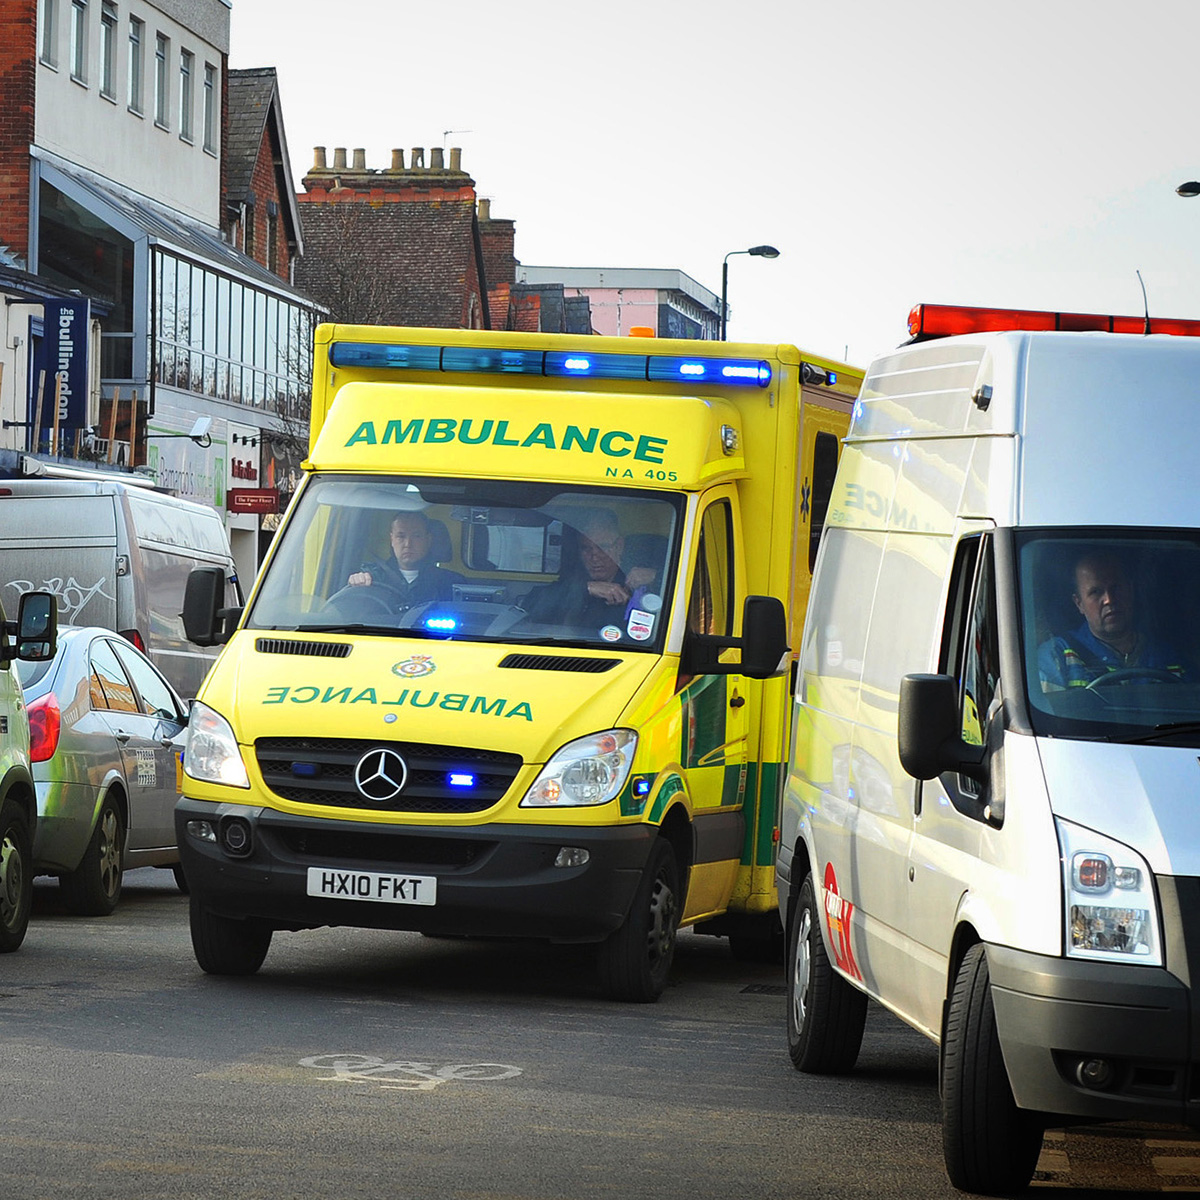 Cyclist injured in collision in Oxford's High Street